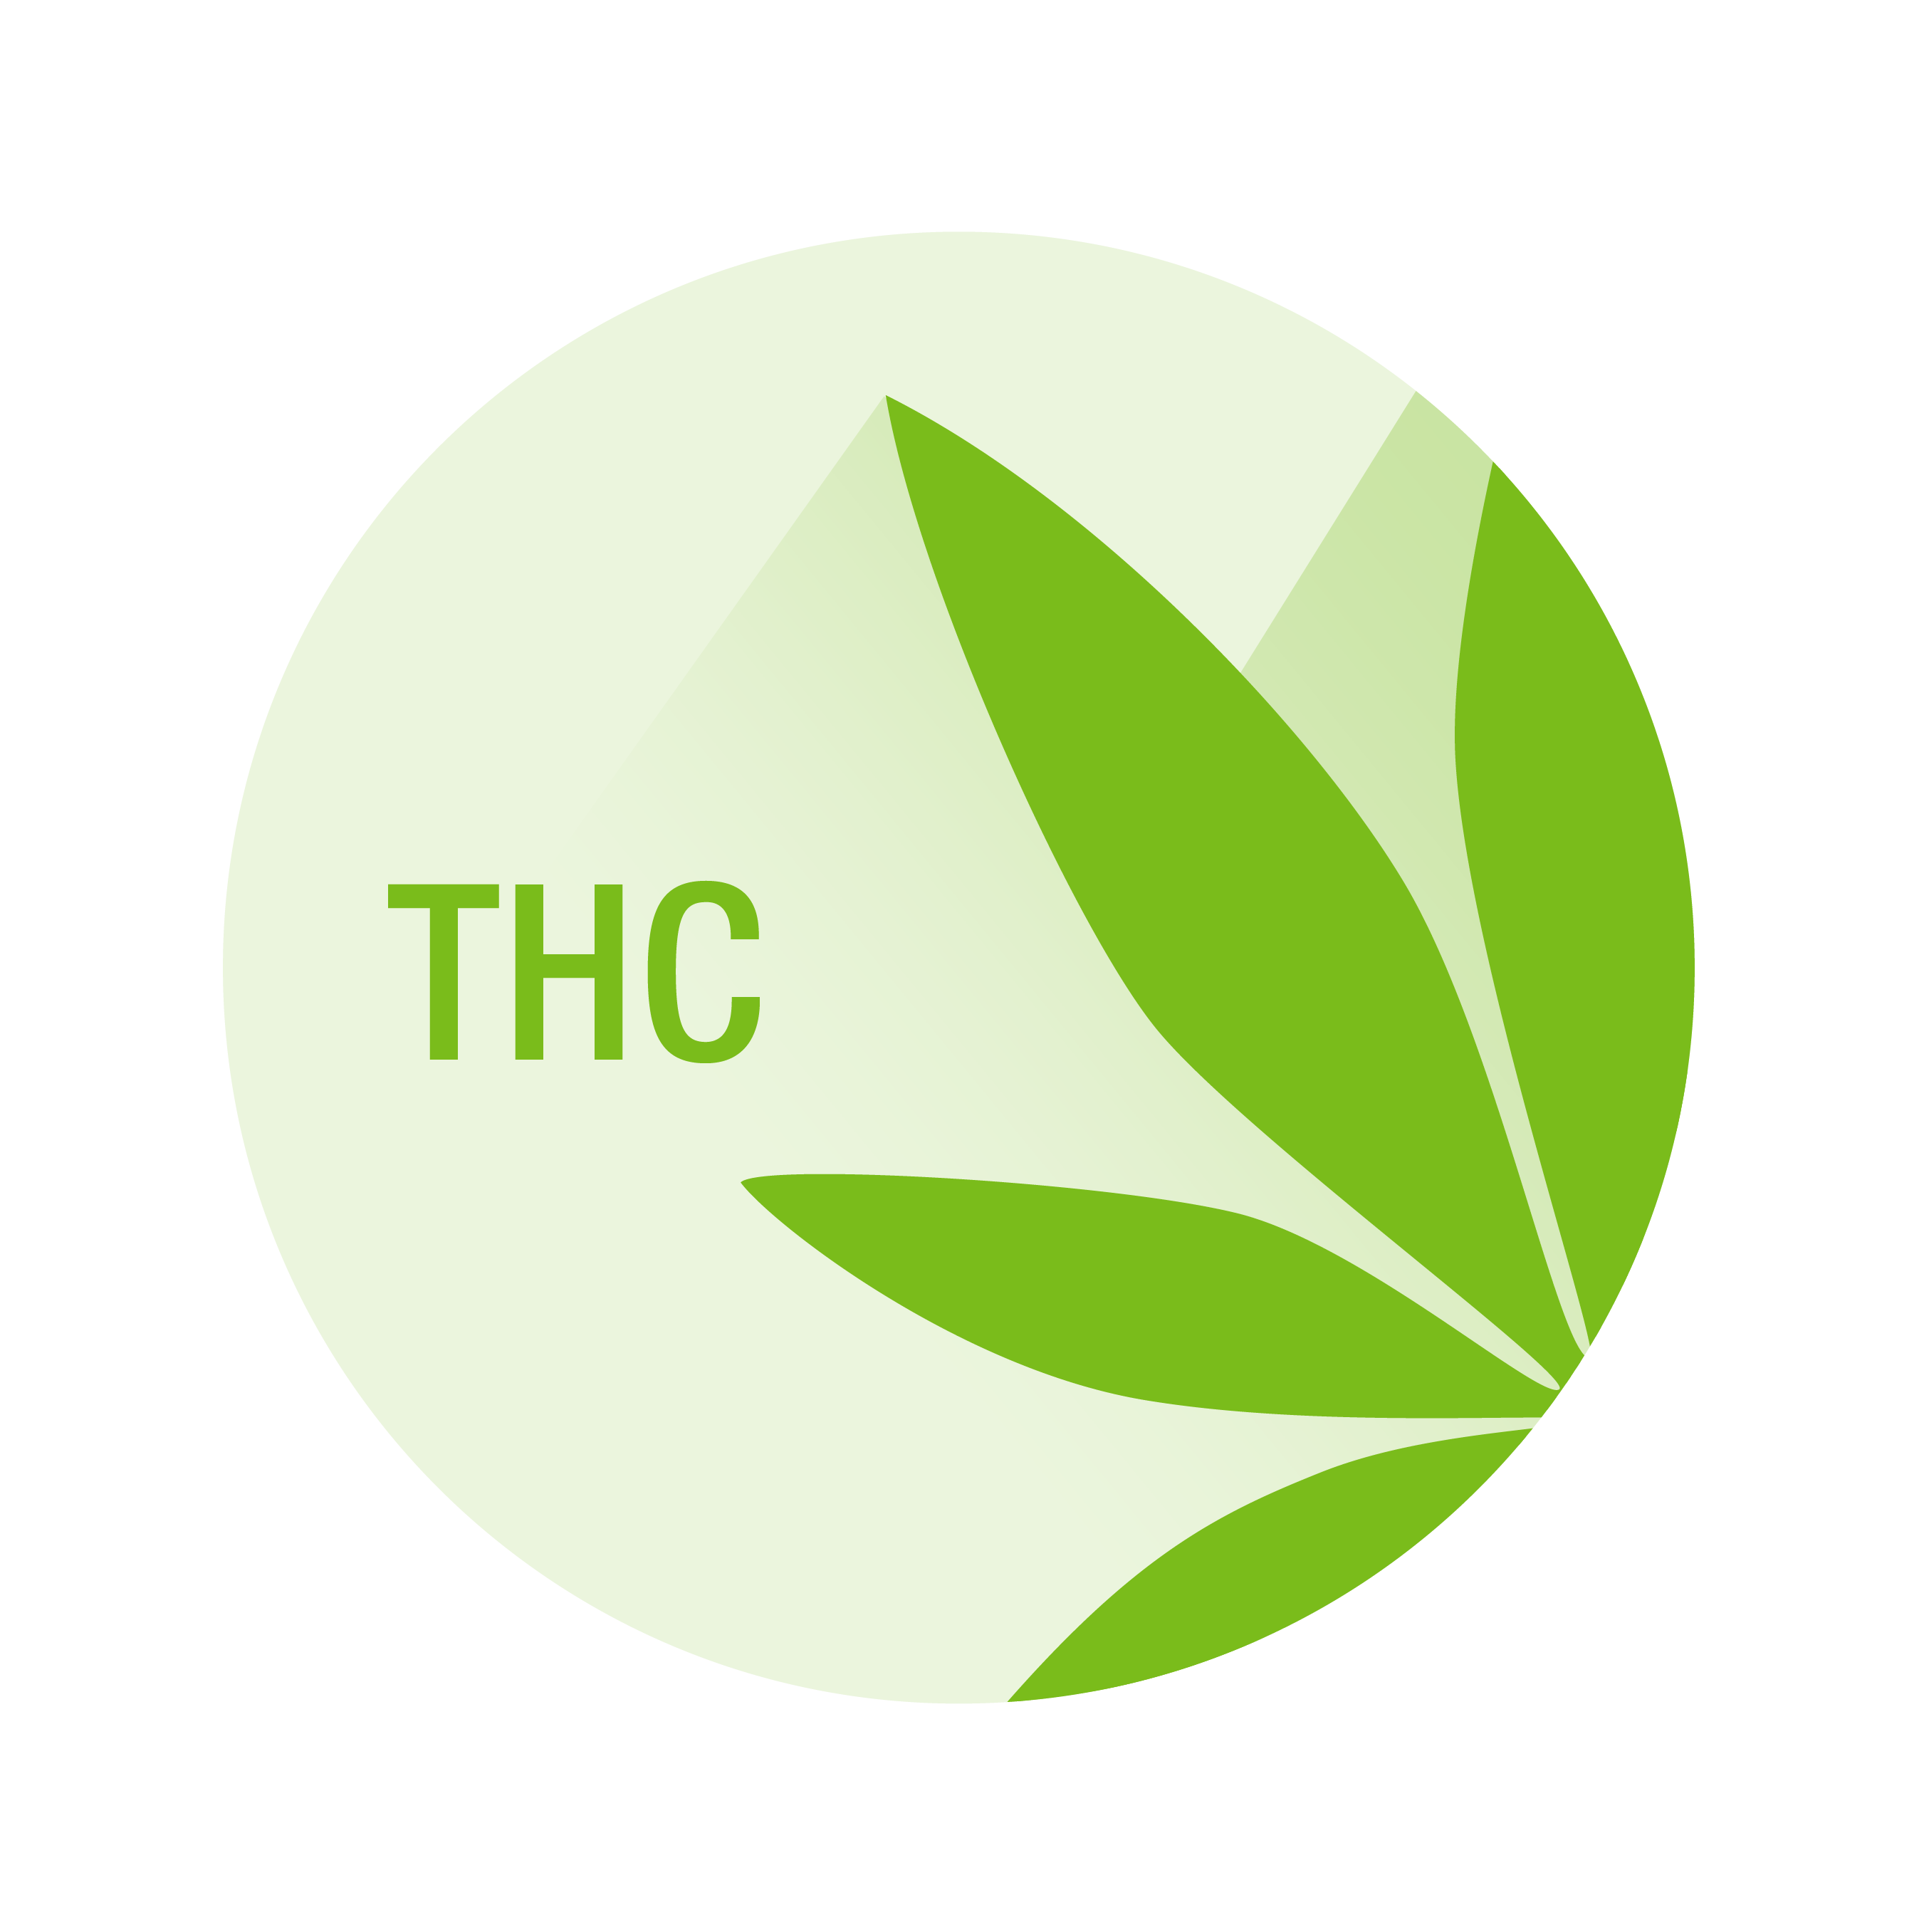 THC label with marijuana leaf